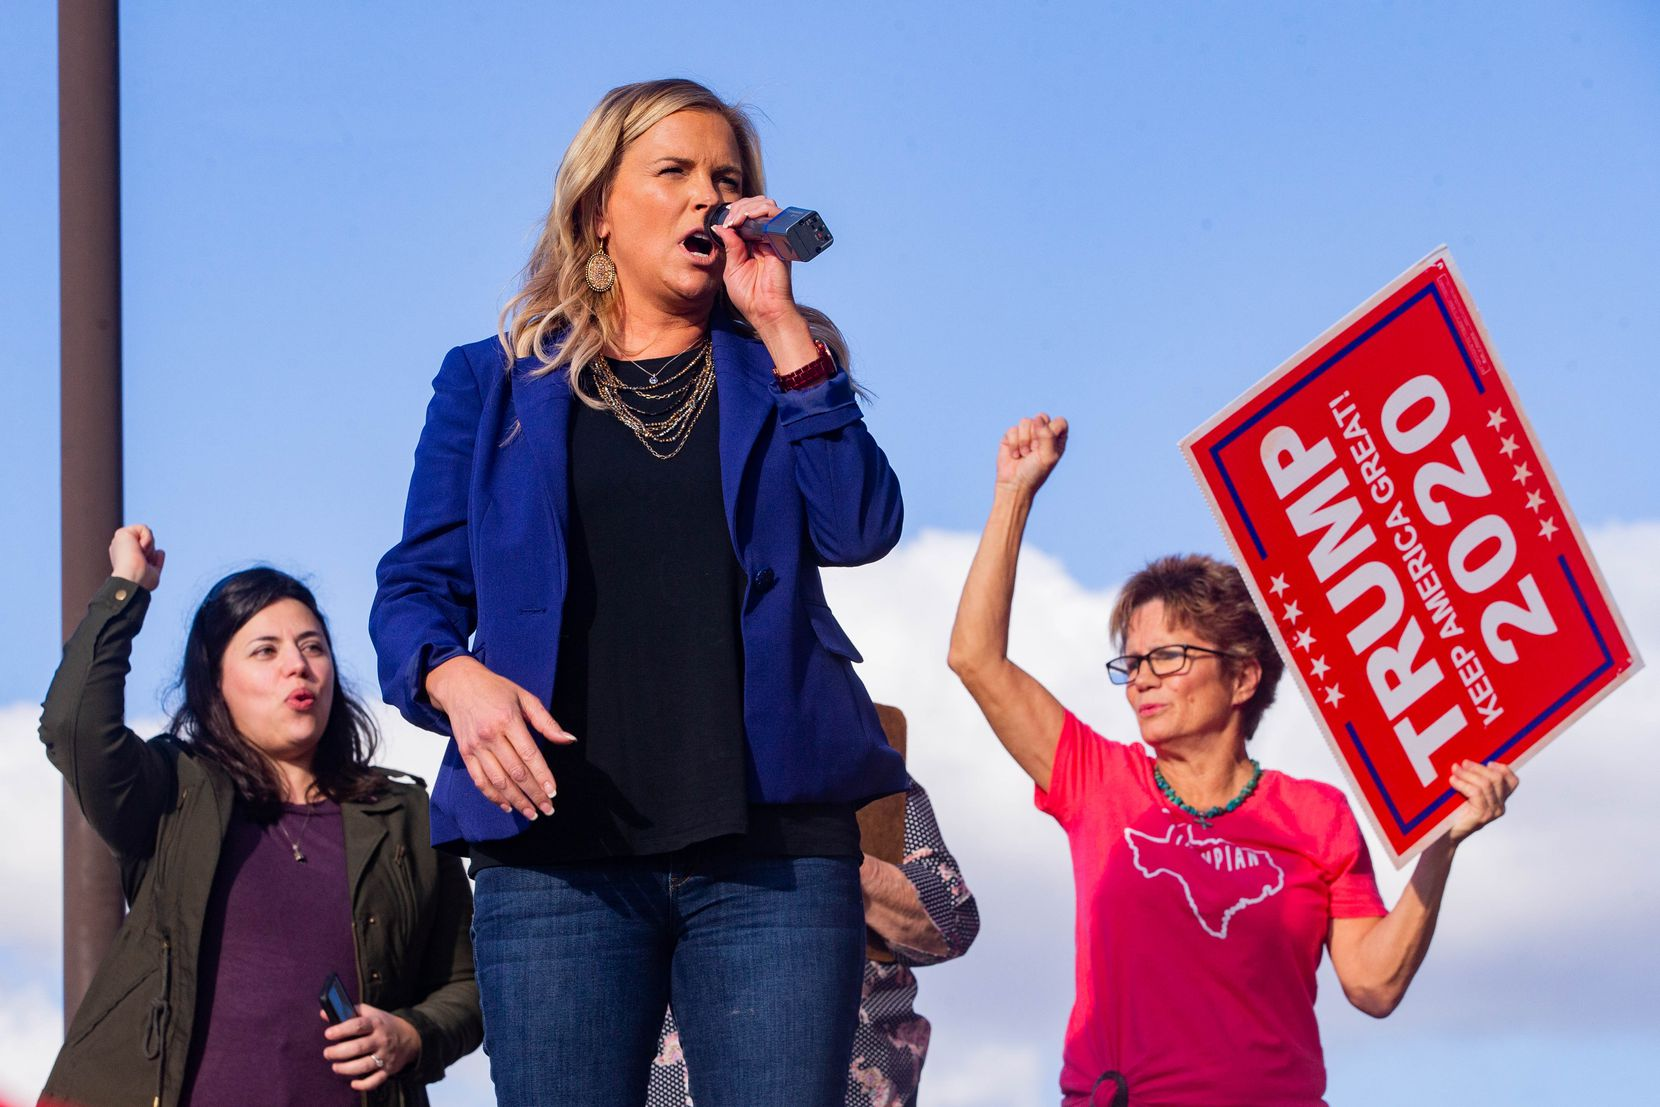 Shelley Luther speaks during an America is Great rally hosted by TrumpTrain 2020 DFW at Rockwall County Courthouse in Rockwall on Sunday, Nov. 8, 2020.